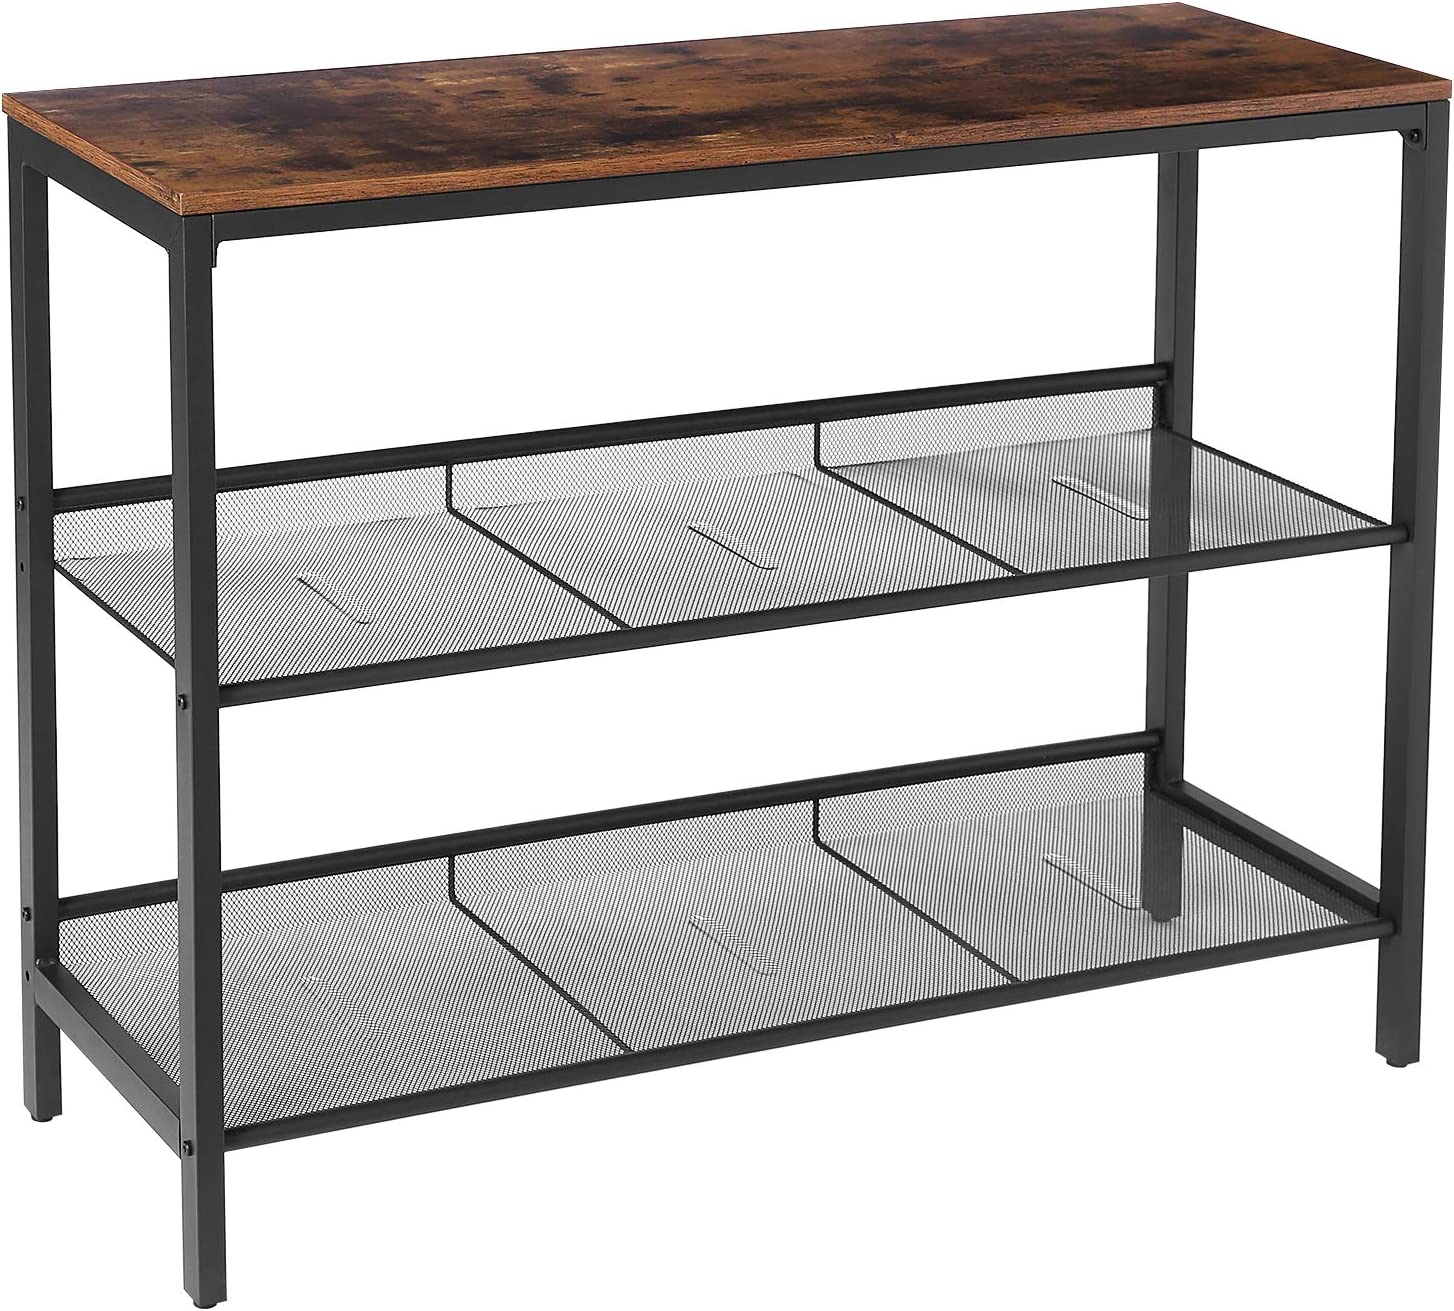 HOOBRO Console Table, Sofa Table with 2 Flat or Slant Adjustable Mesh Shelves, Hallway Table and Sideboard in Entryway, Living Room Corridor, Easy Assembly, Industrial, Rustic Brown and Black BF01XG01